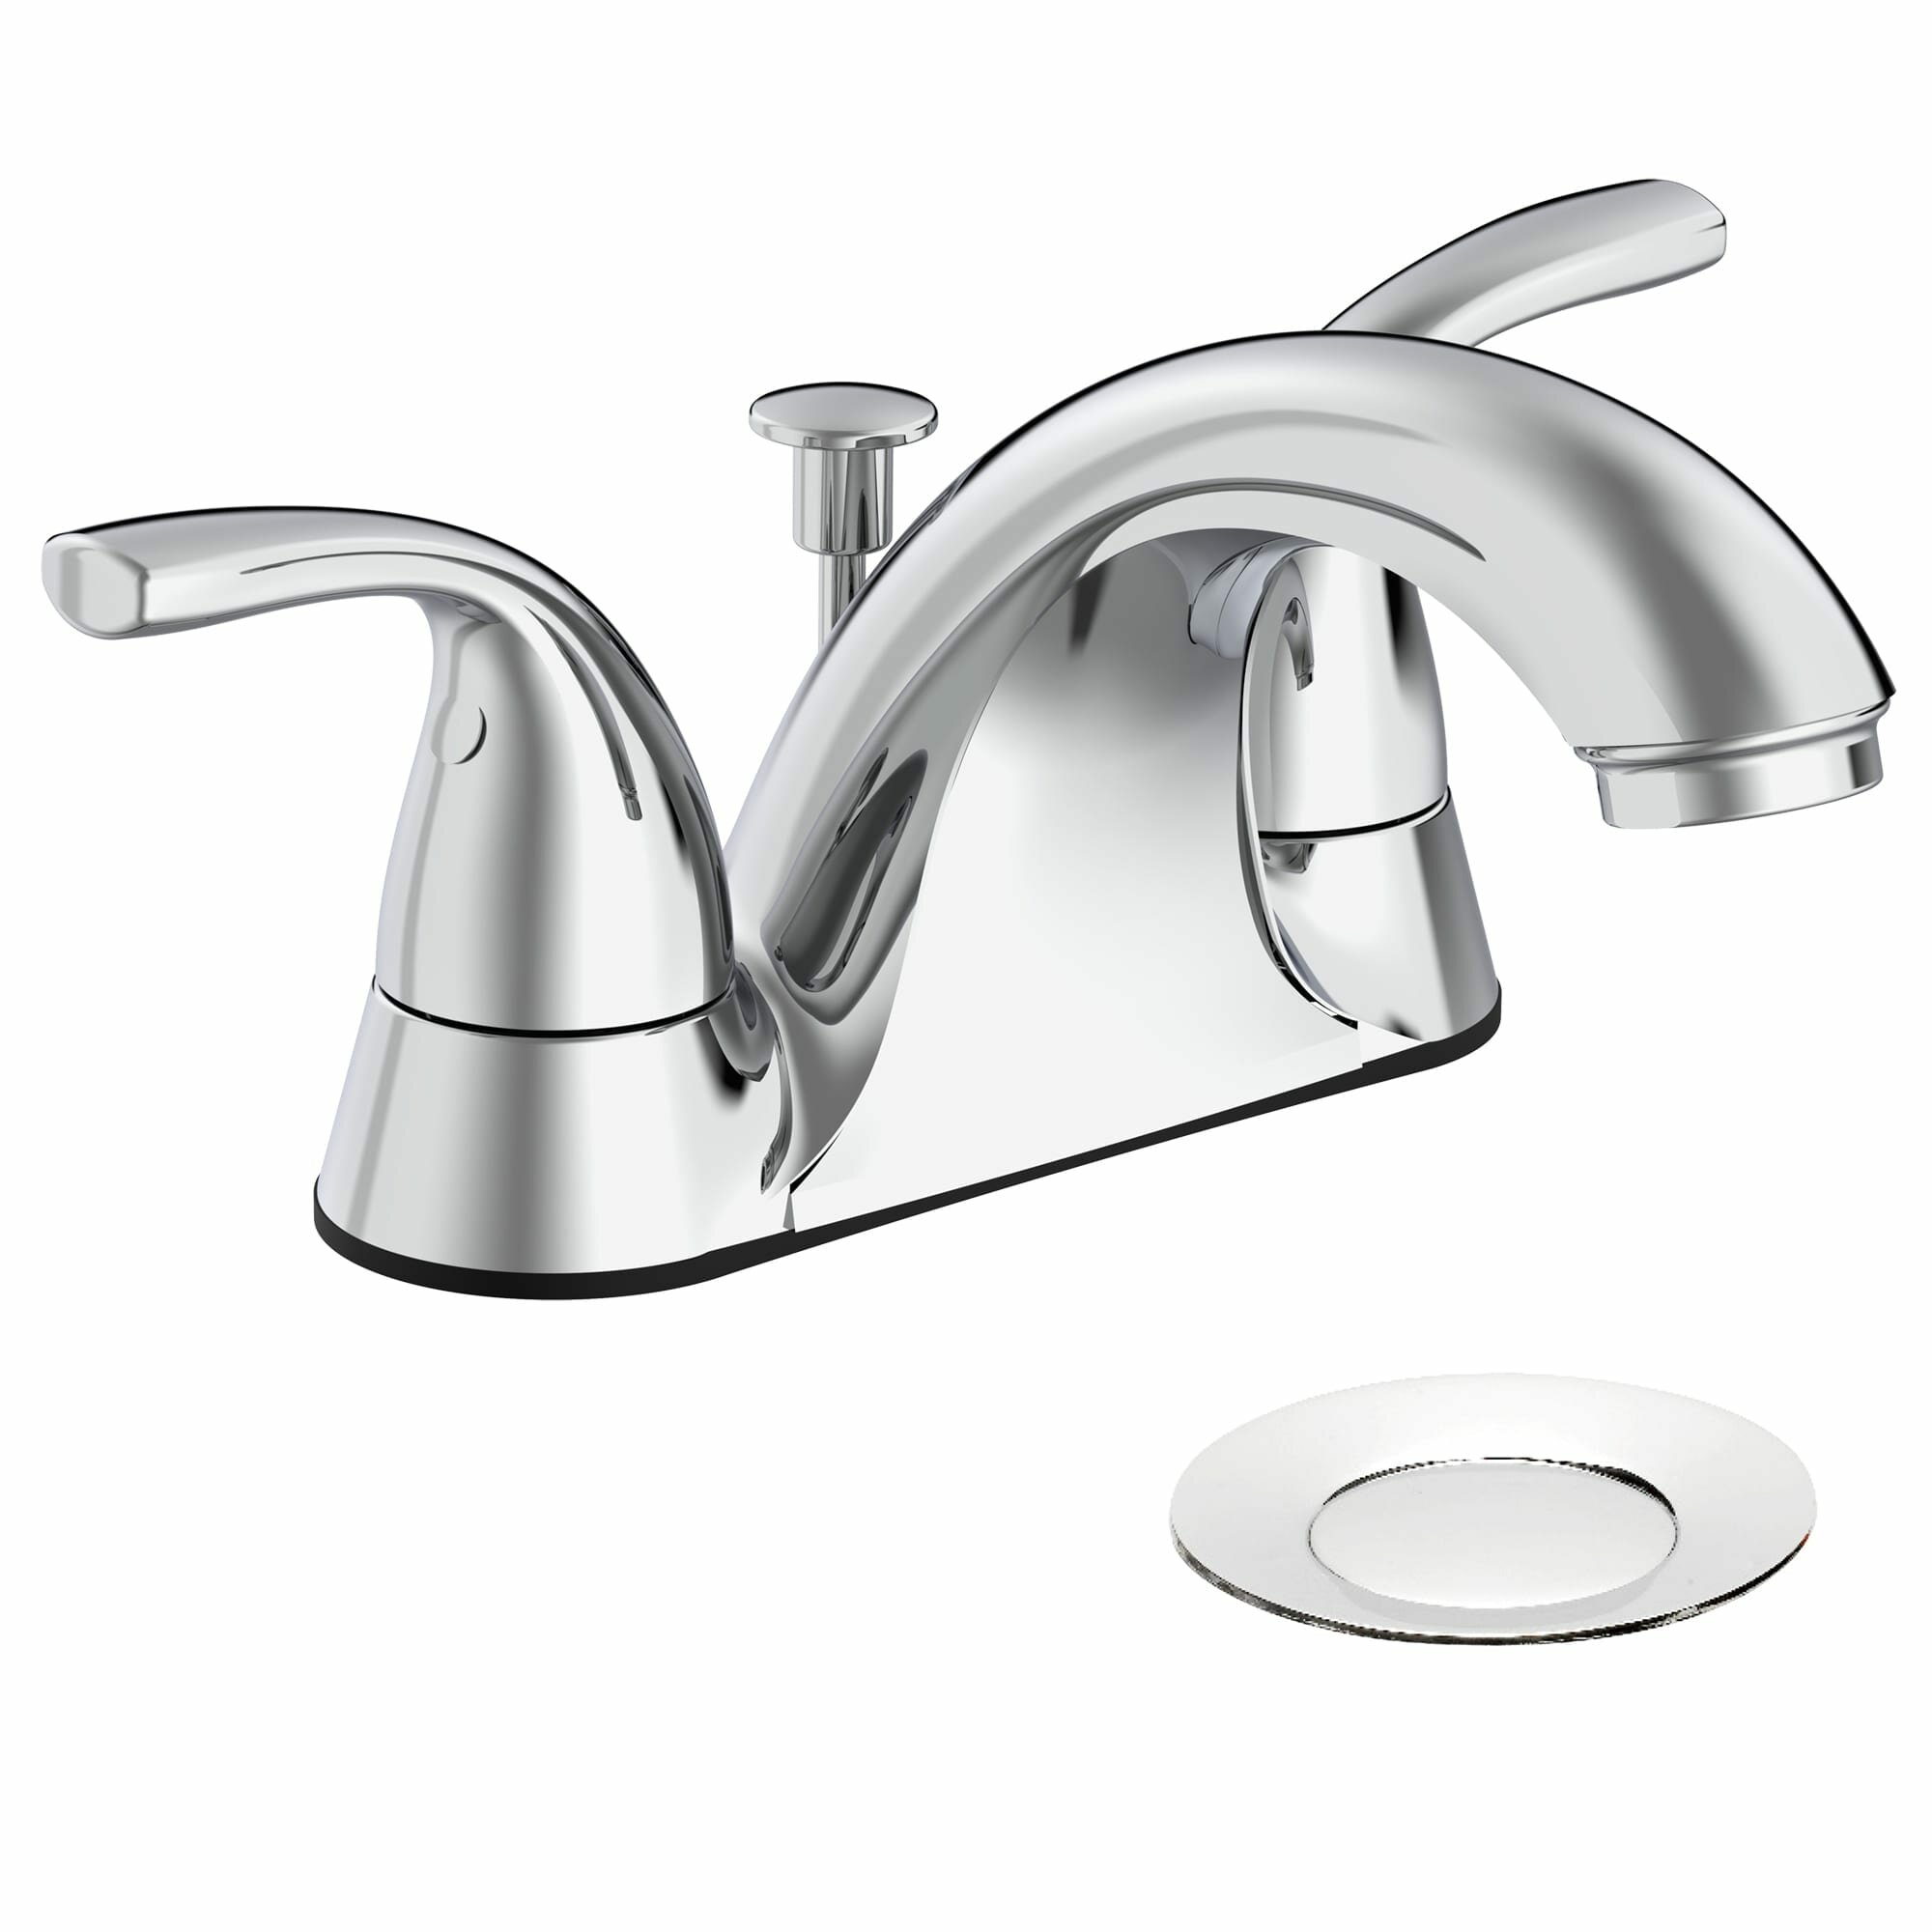 Keeney Belanger Centerset Bathroom Faucet With Drain Assembly Wayfair